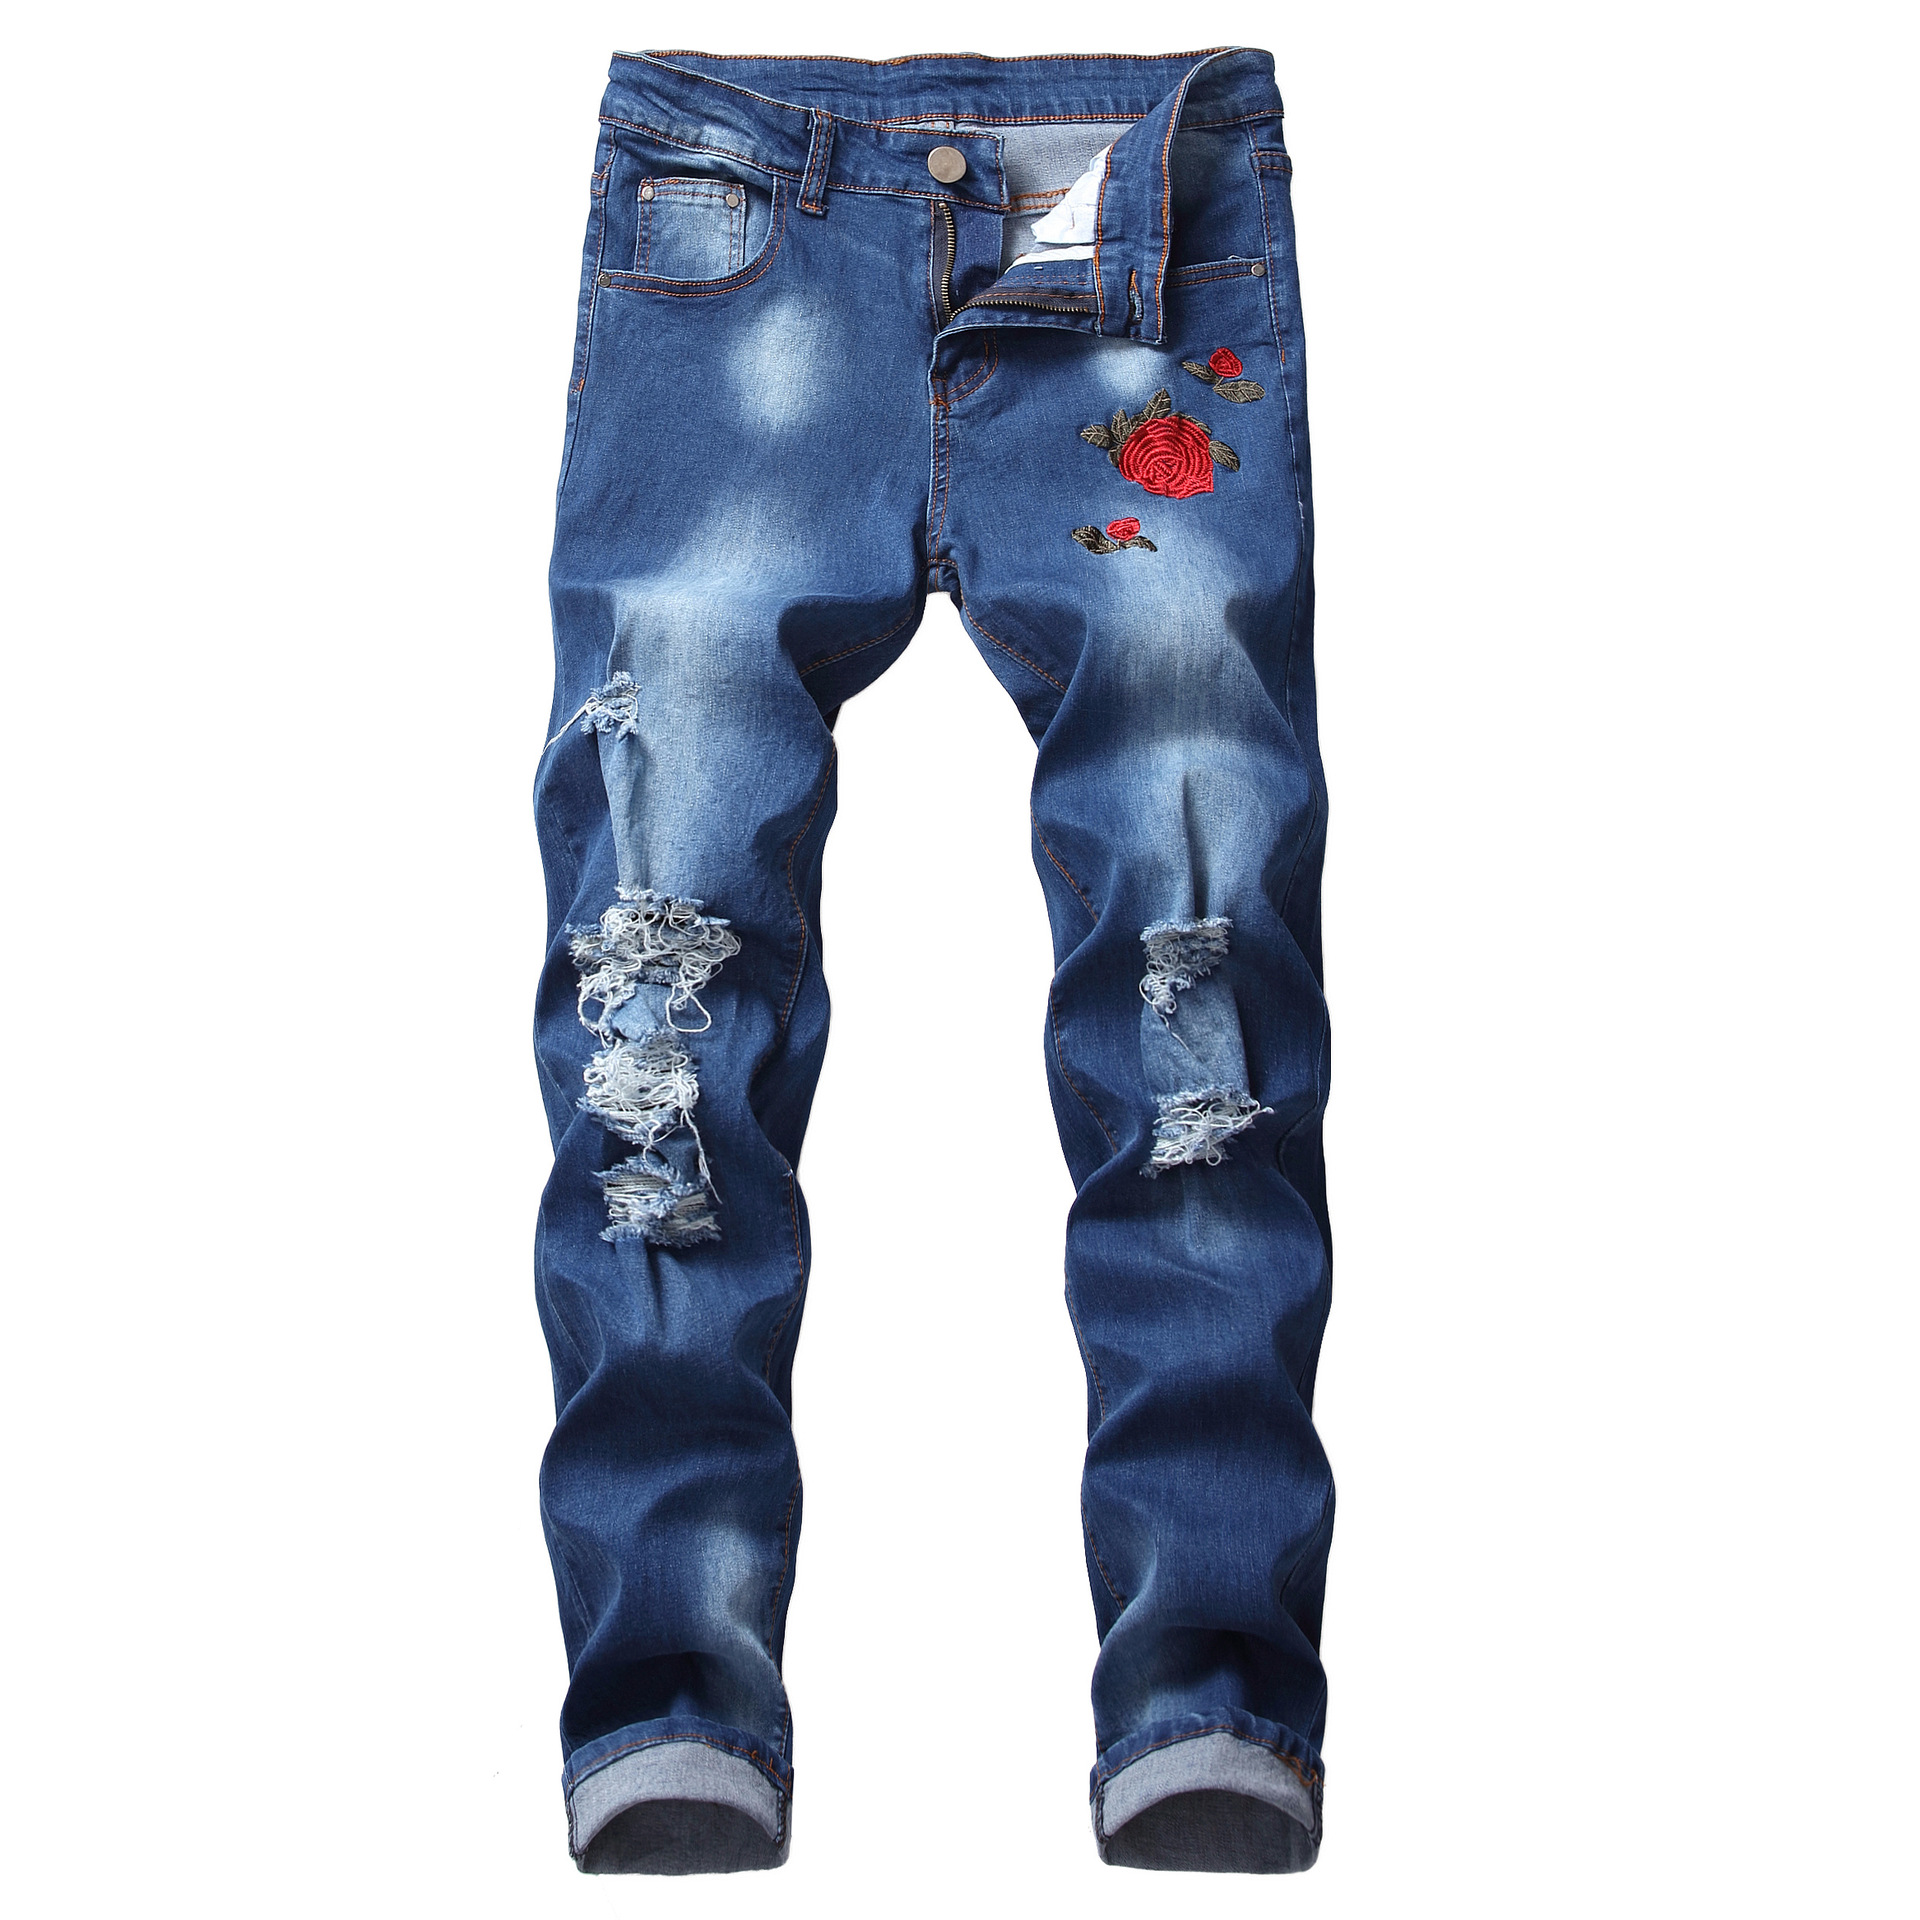 Ripped Jeans with Embroidery Men with Flowers Embroidered Men's Denim Jeans Stretch Skinny Push Size 40 42 Jeans Pants